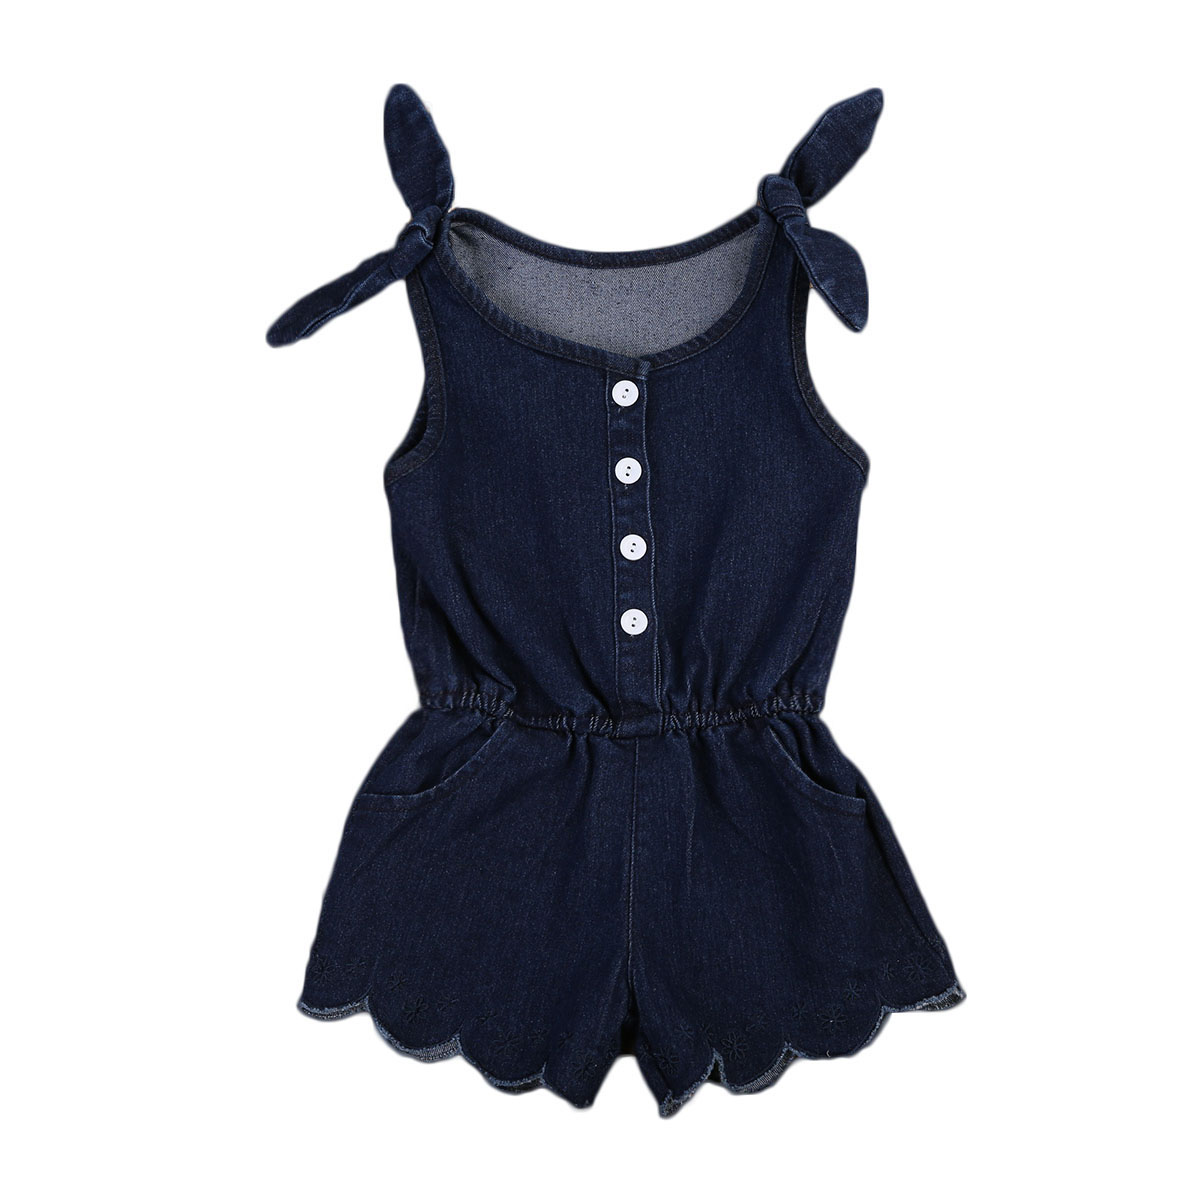 9949b282559e Newborn Infant Baby Girl Sleeveless Denim Romper Jumpsuit Toddler  One-Pieces Outfits Summer Sunsuit Clothes